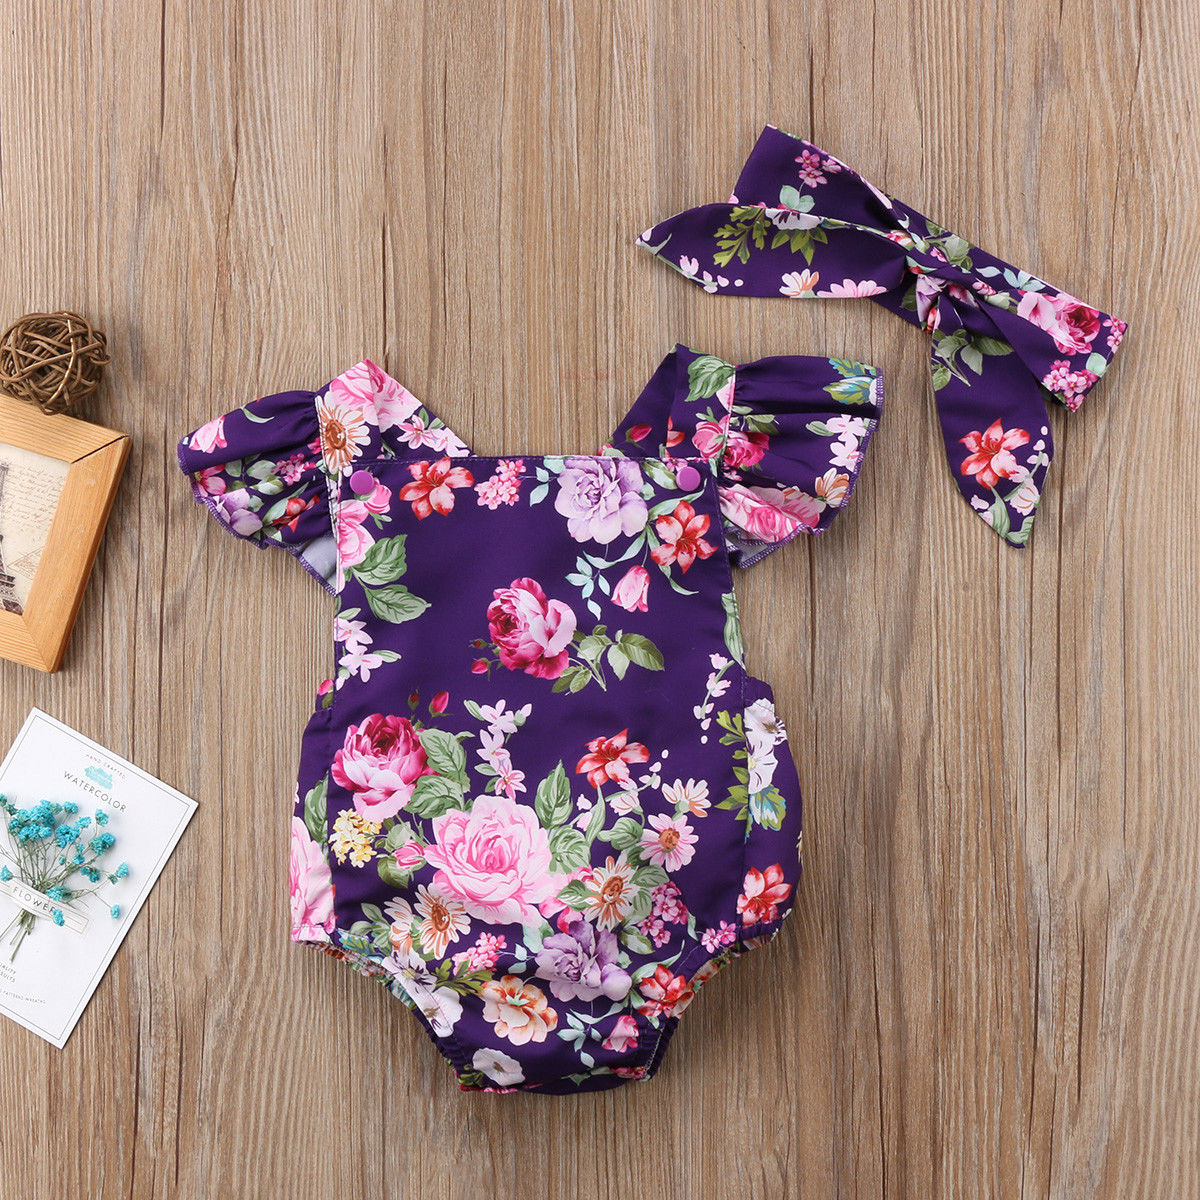 Summer Newborn Infant Baby Girls Floral Triangle Bodysuit Jumpsuit Outfits Clothes